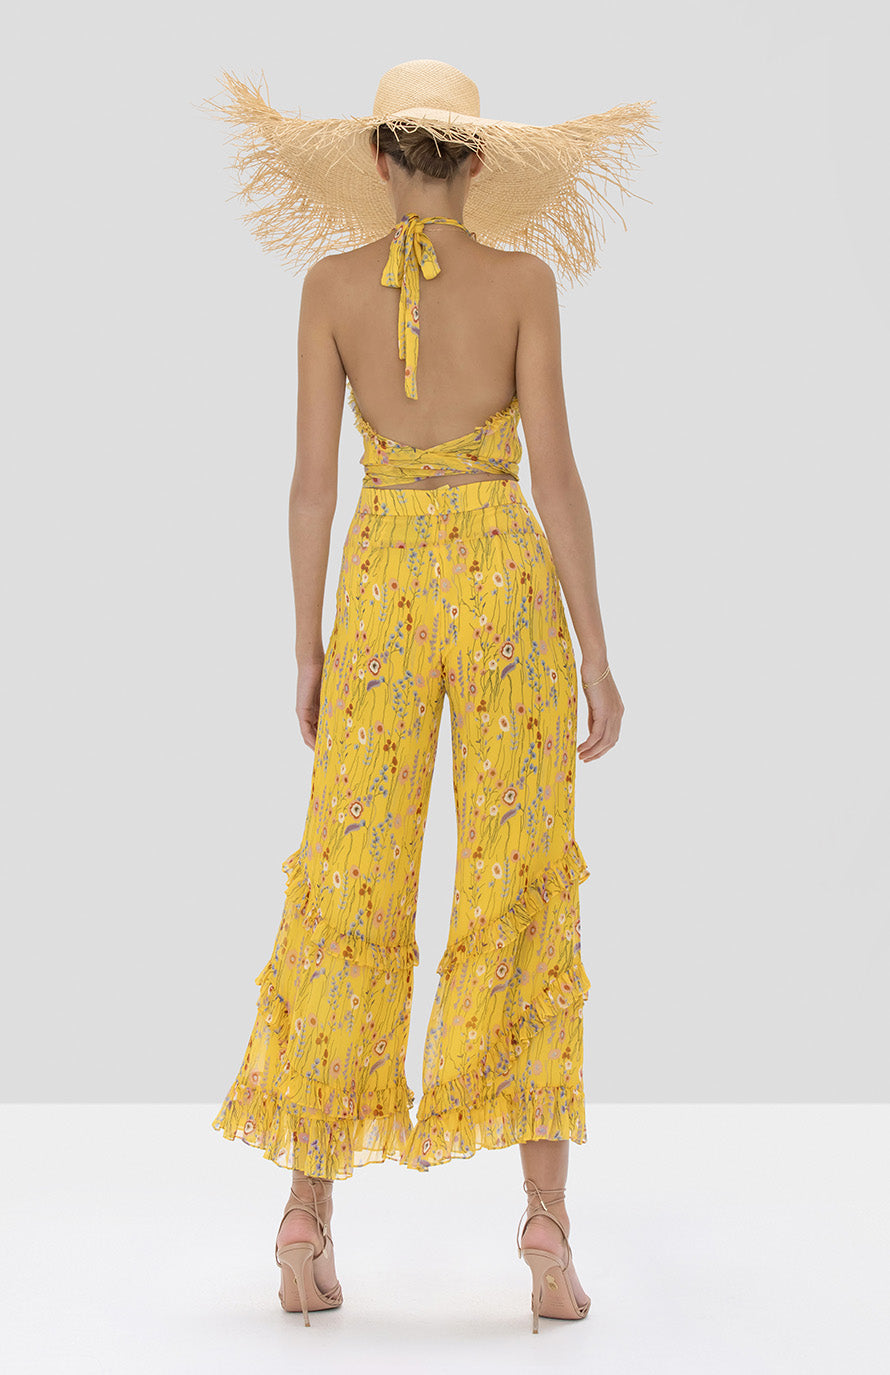 Alexis Balbina Top and Faizel Pant in Sunrise Bouquet from Spring Summer 2020 Collection - Rear View